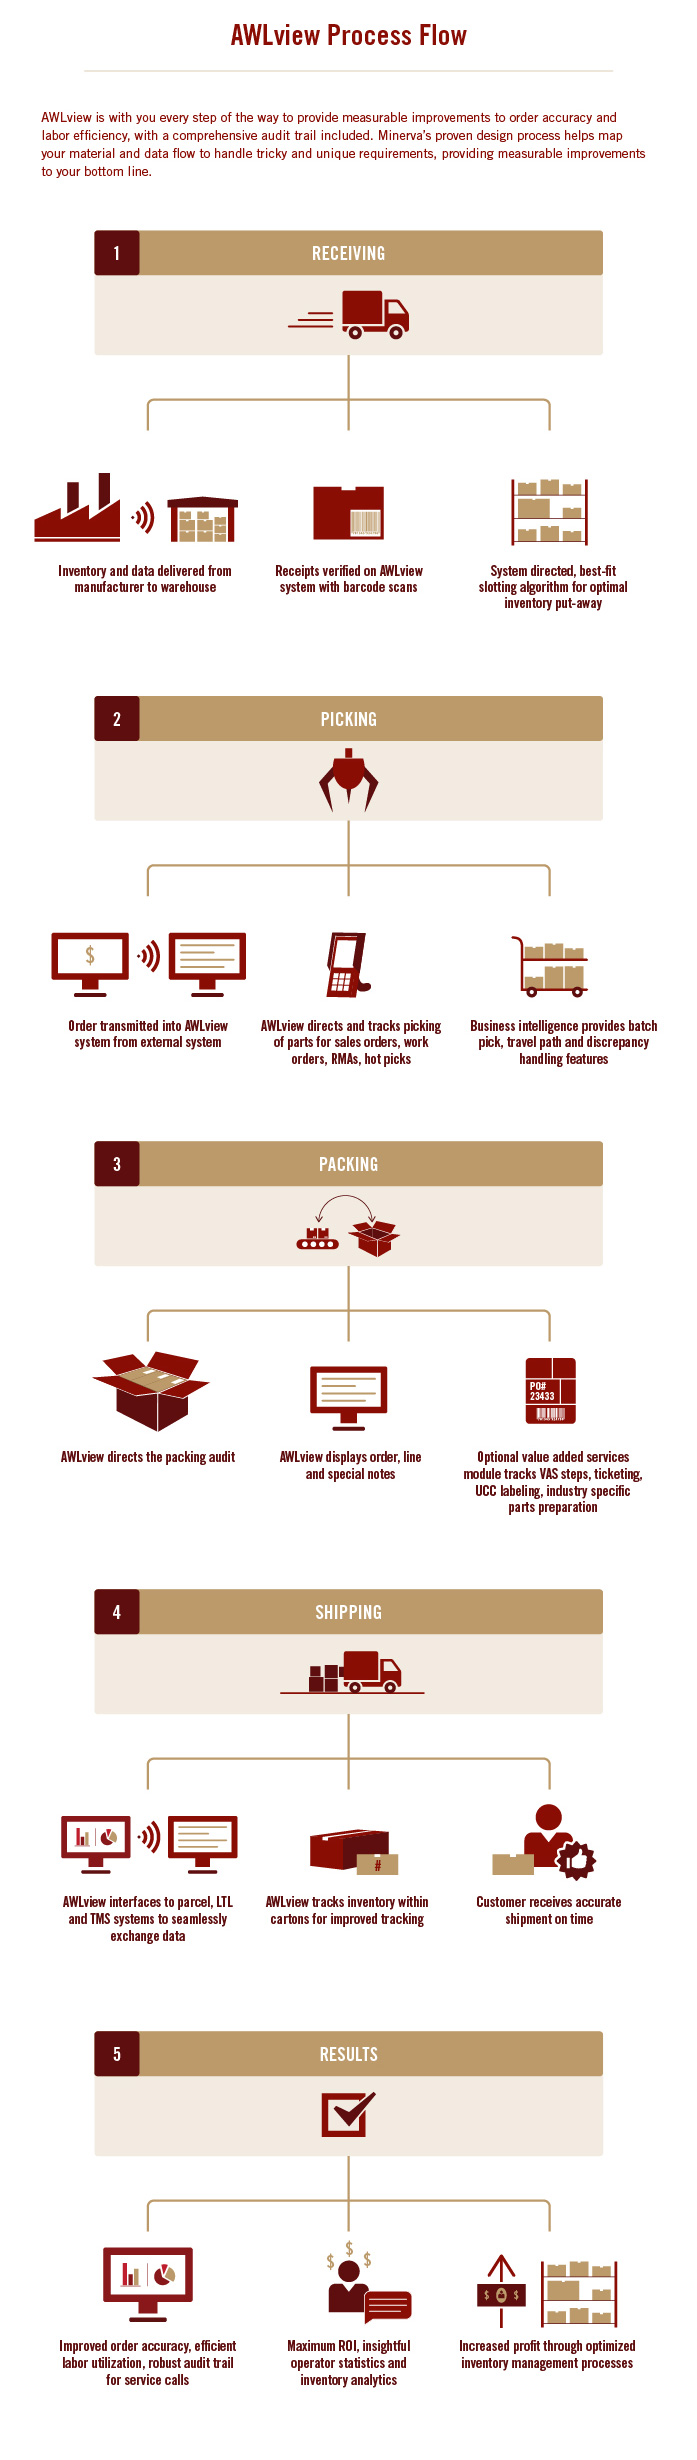 MIN-AWLview-InfoGraphic-FINAL-web